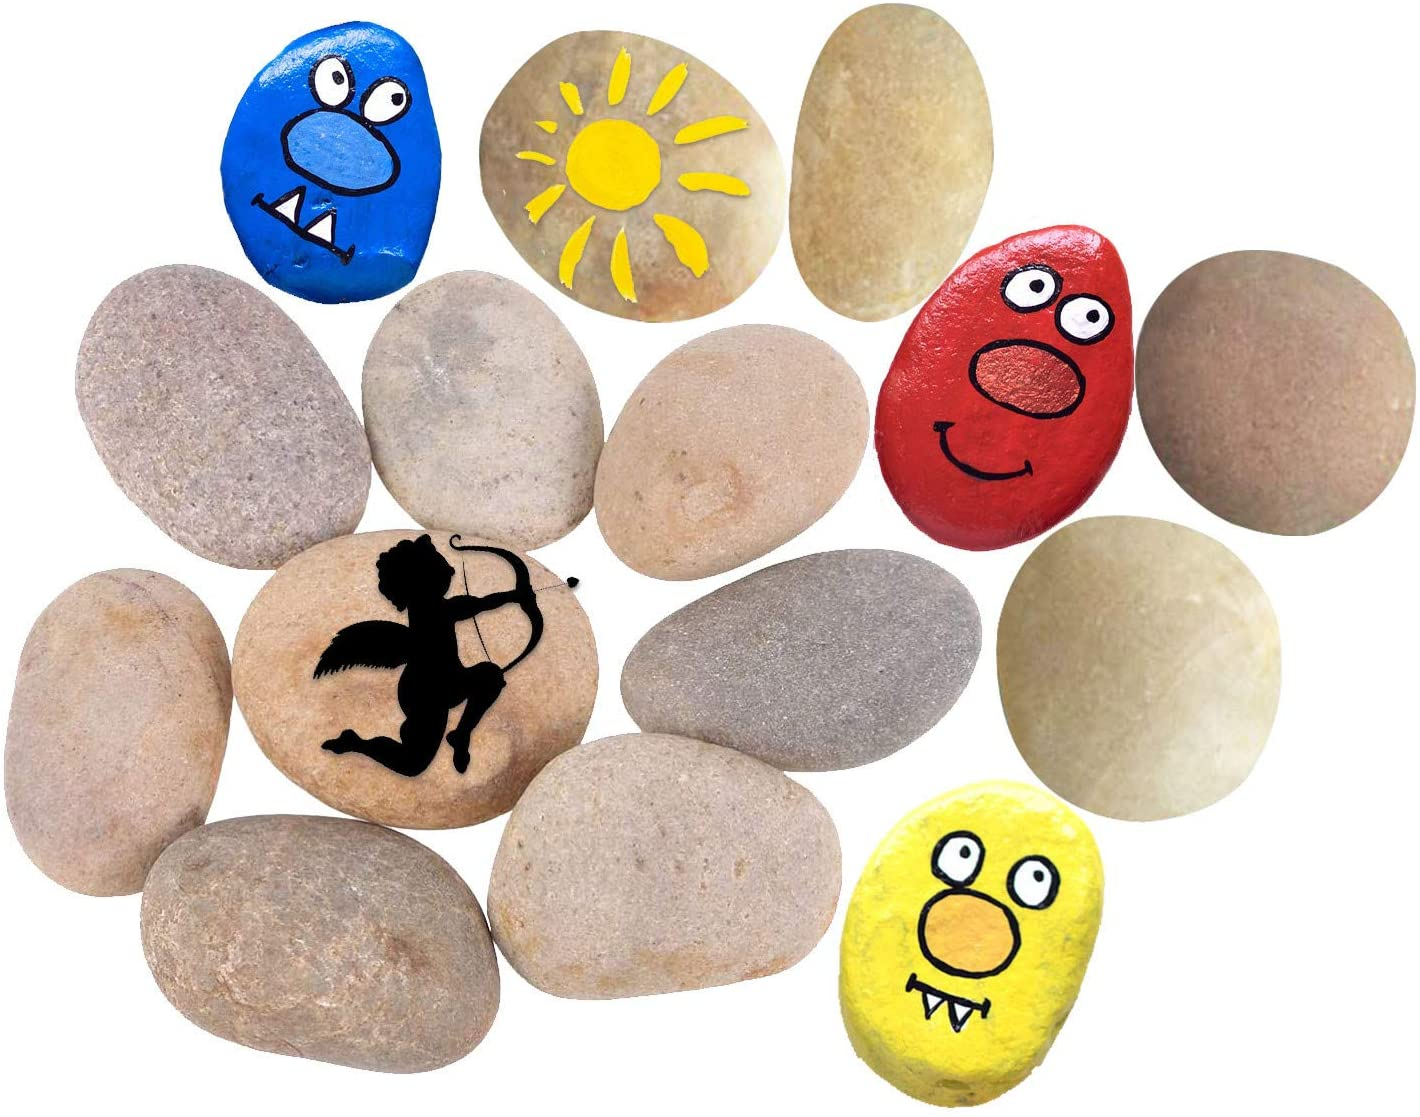 15PCS Painting Rocks, DIY Rocks Flat Smooth Kindness Rocks for Arts, Crafts, Decoration, 1.6